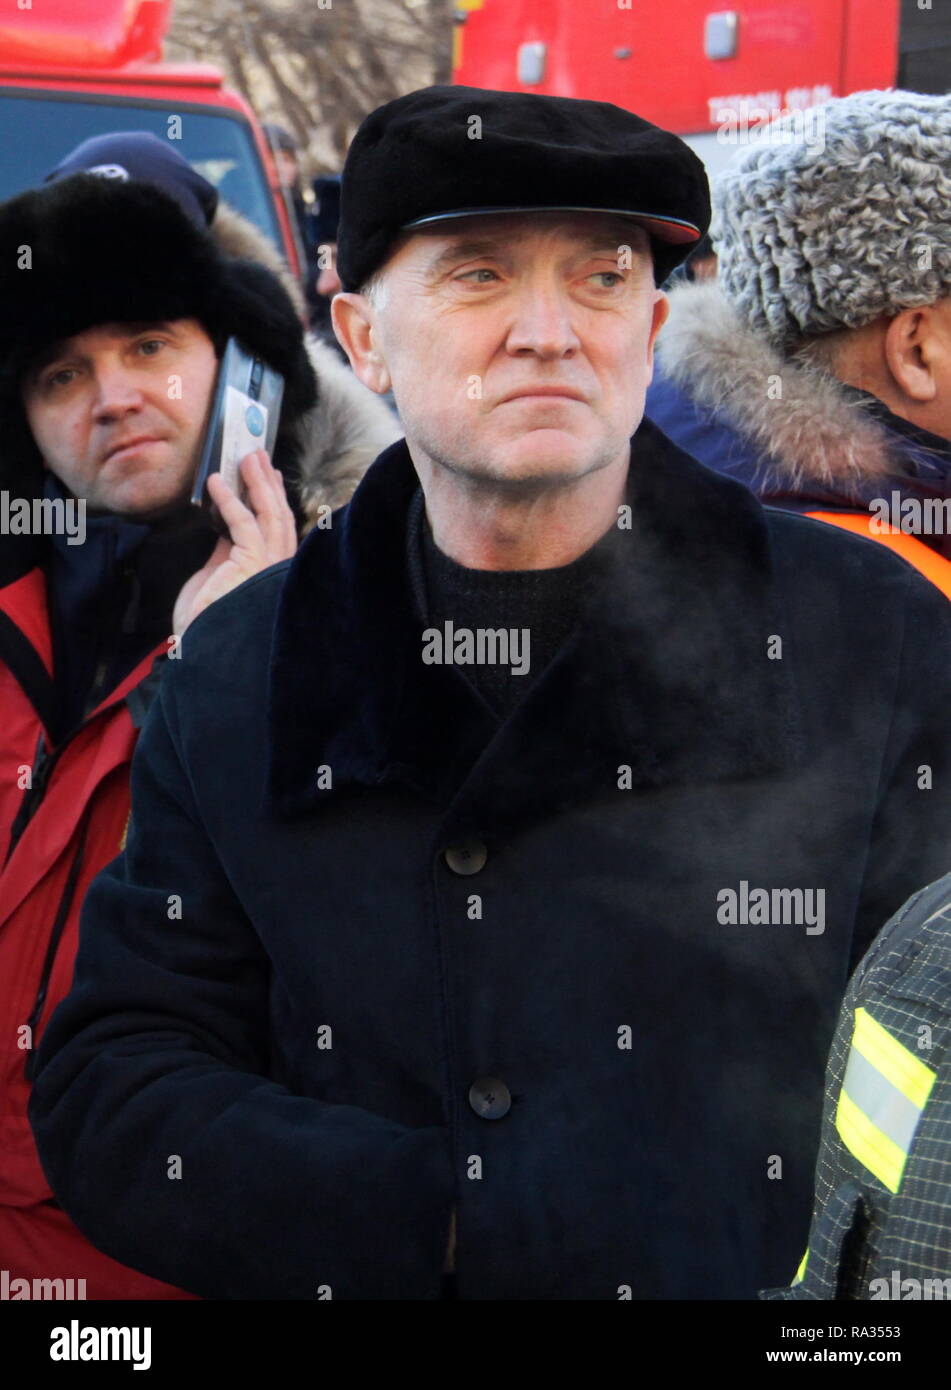 Magnitogorsk, Russia. 31st Dec, 2018. Magnitogorsk, Russia. 31st Dec, 2018. Chelyabinsk Region Governor Boris Dubrovsky (R) at the site of an apartment building collapse in the city of Magnitogorsk. A domestic gas blast has caused a partial collapse of a residential building at 164 Karla Marksa Avenue; 4 people have been killed, dozens remain missing. Ilya Moskovets/TASS Credit: ITAR-TASS News Agency/Alamy Live News - Stock Image